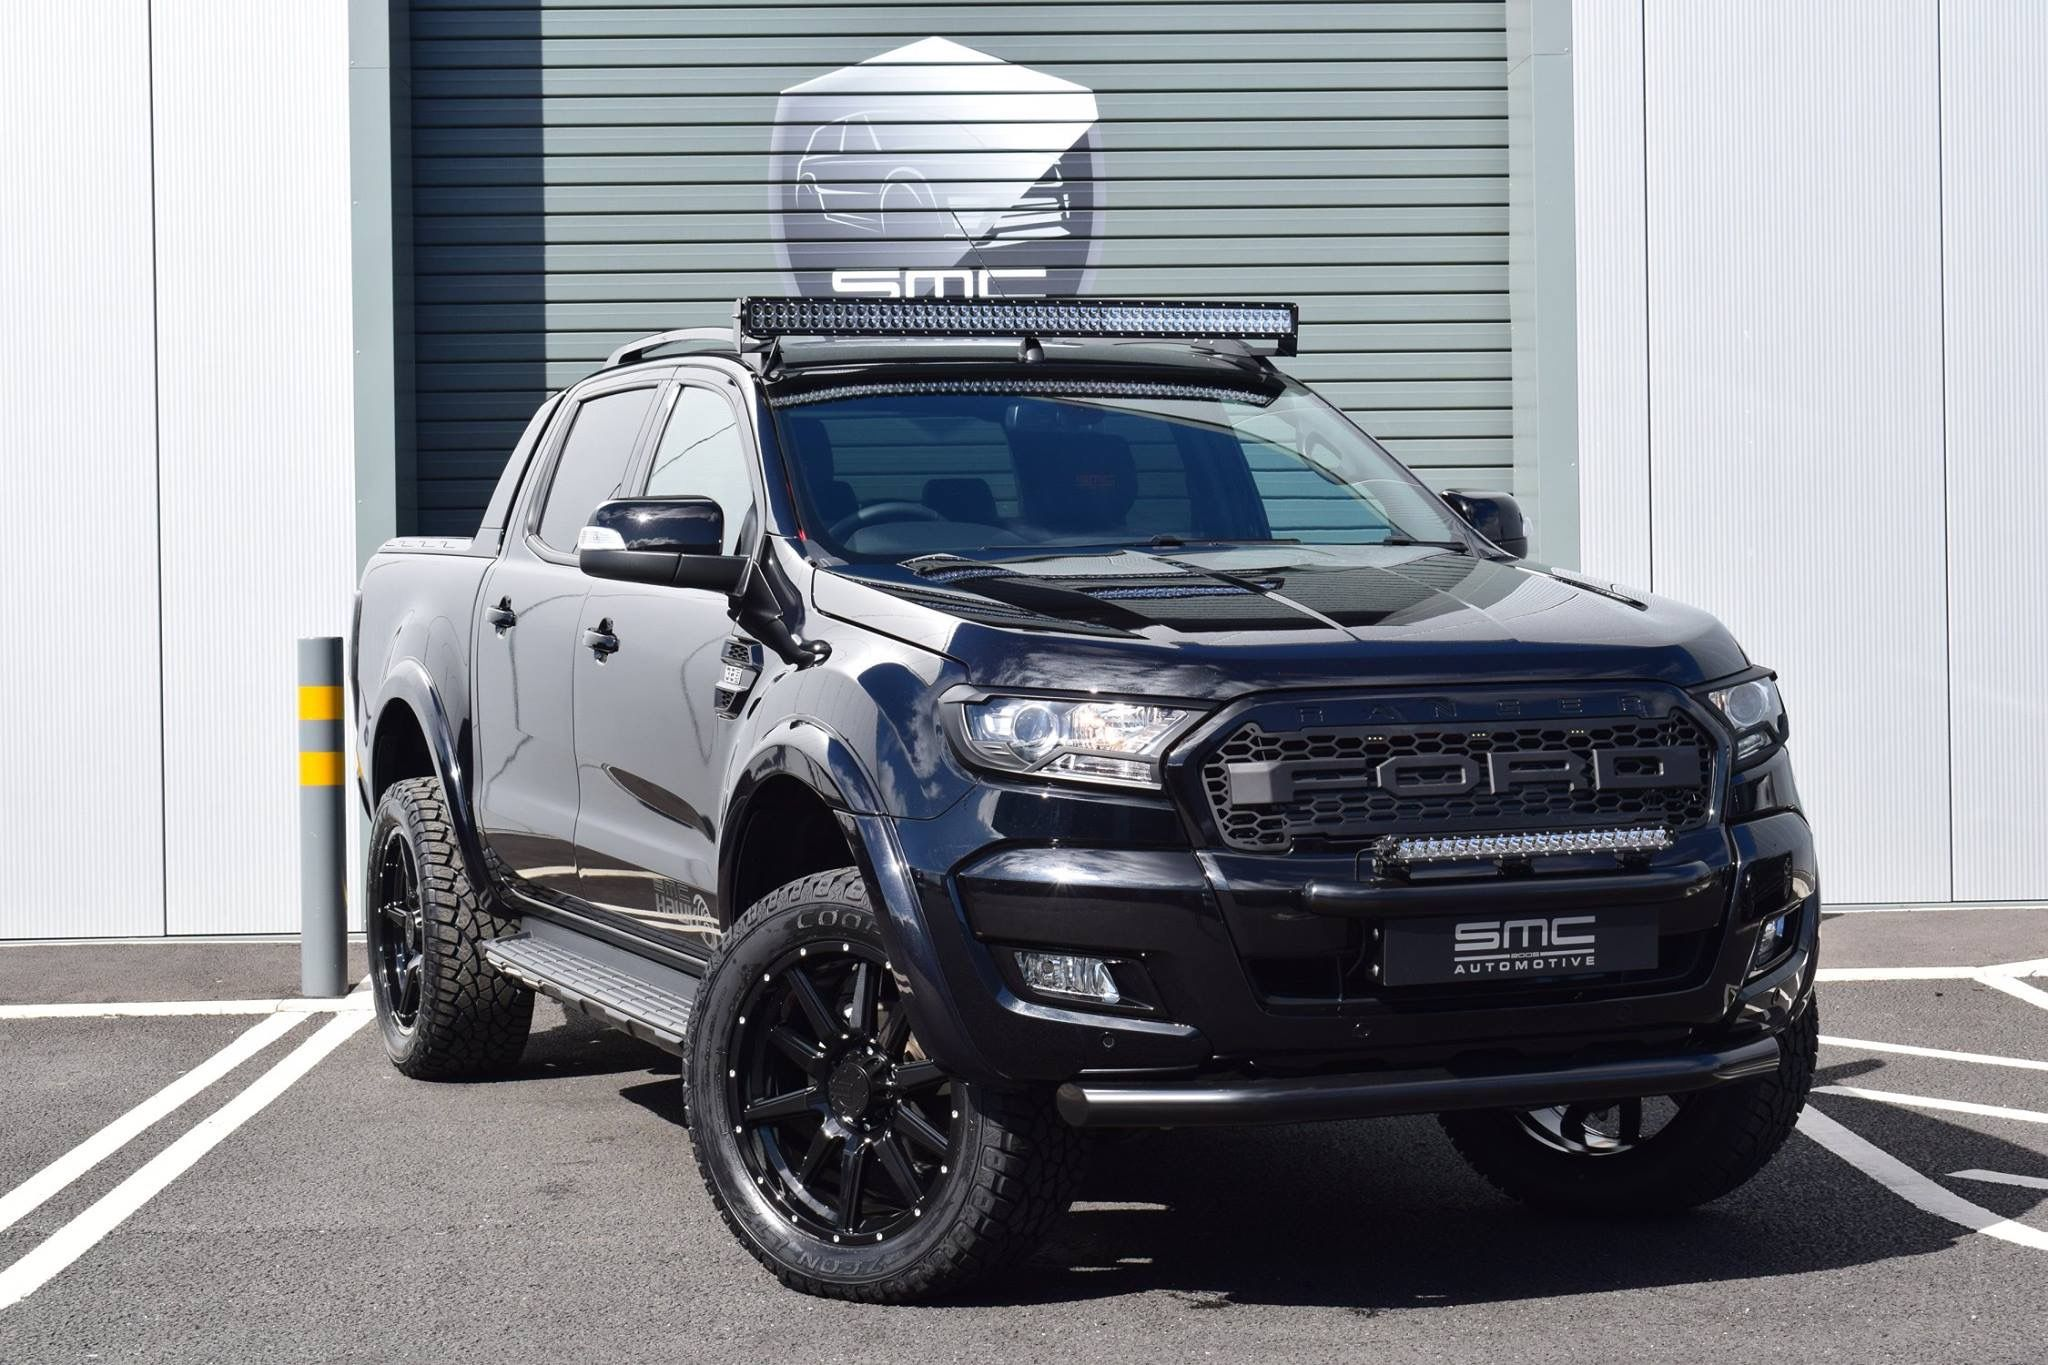 Ford ranger 1998 08 2007 multi search for 4x4 accessories my ranger pinterest 4x4 accessories ford ranger and 4x4